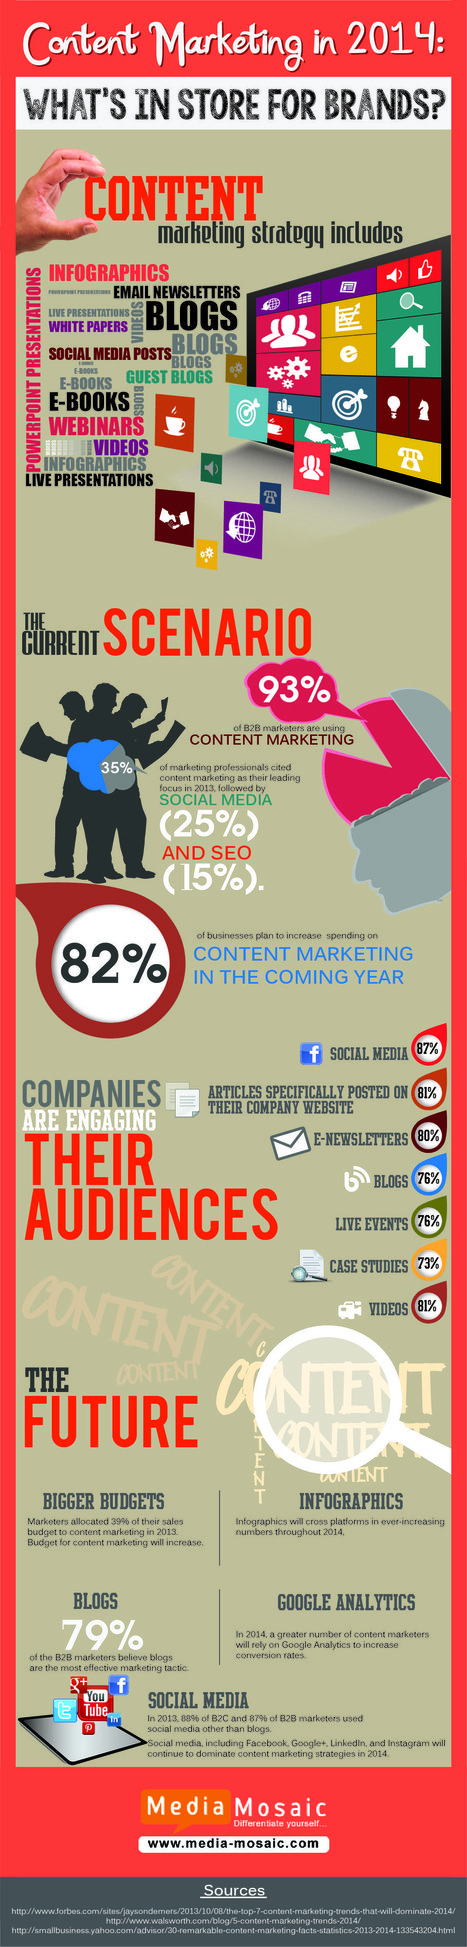 Content Marketing Forecast for 2014 [Infographic] | Beyond Marketing | Scoop.it